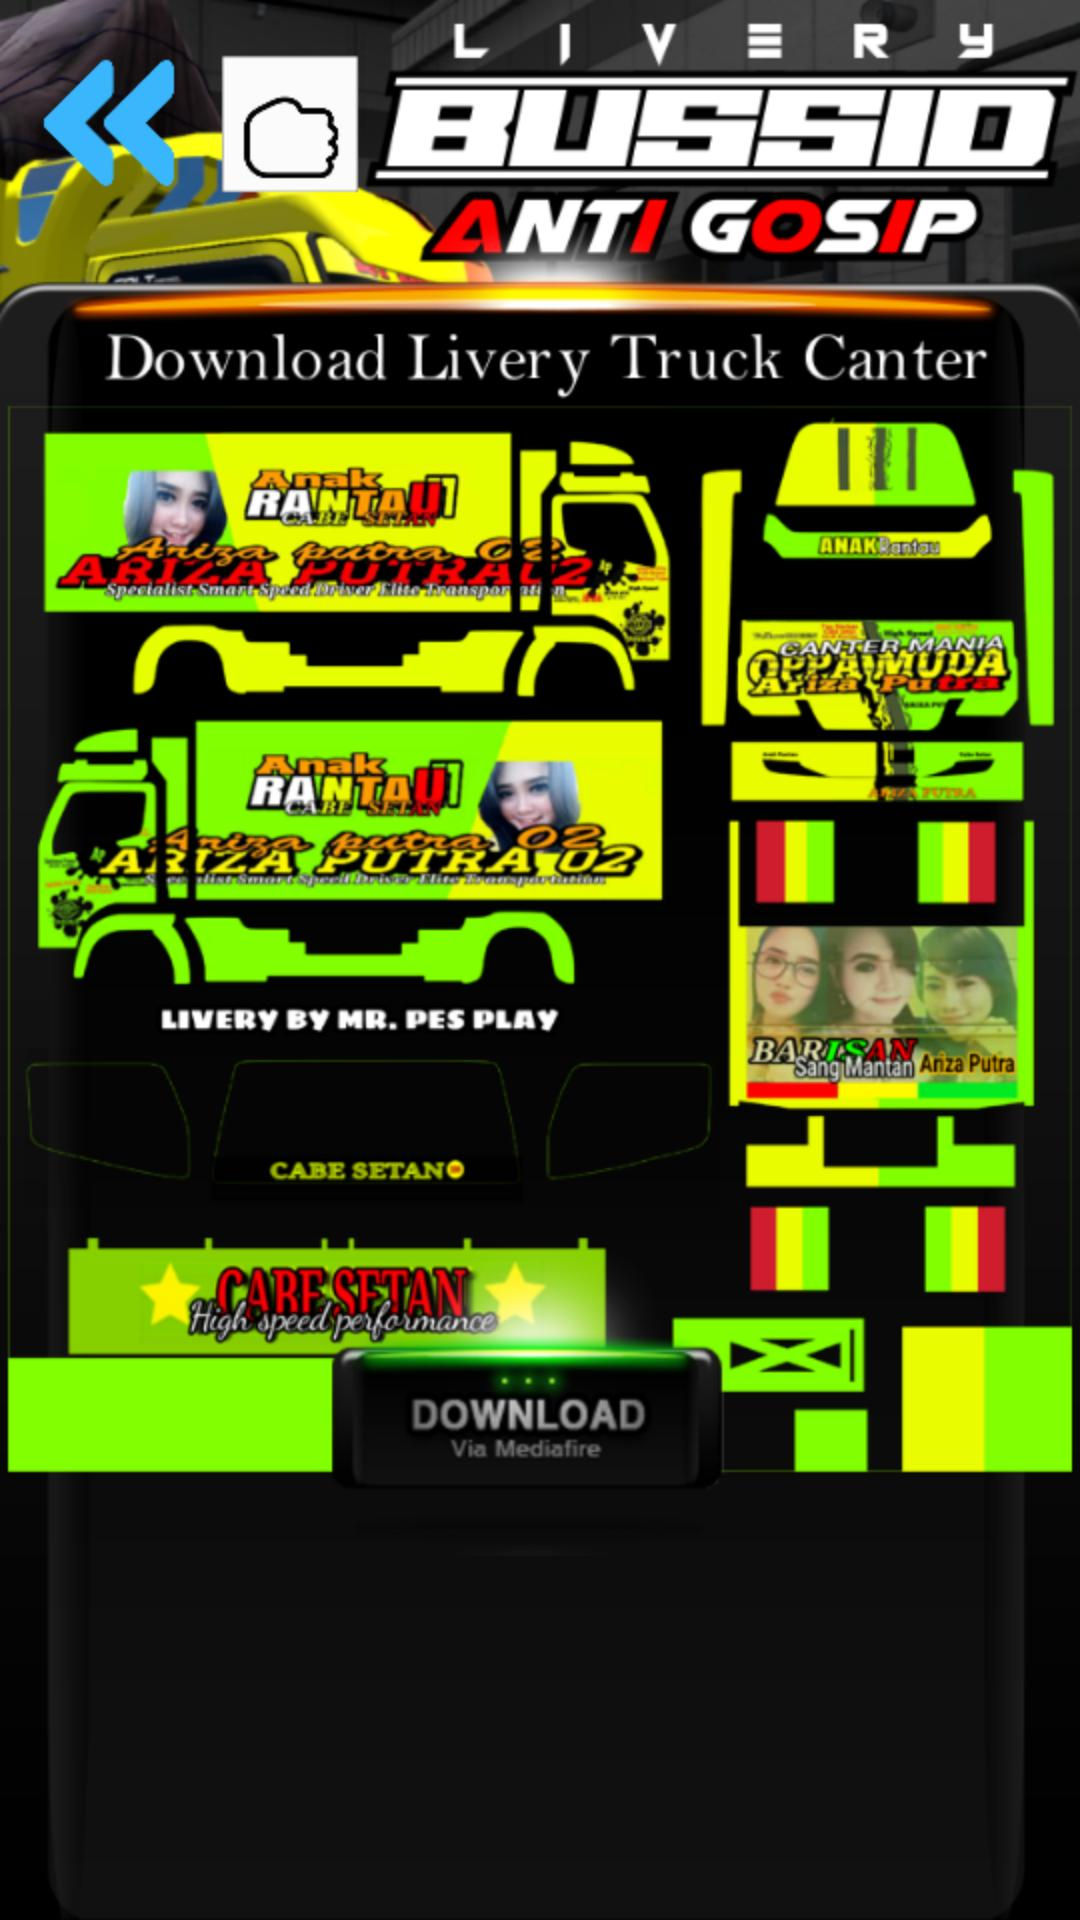 Livery Bussid Anti Gosip For Android Apk Download